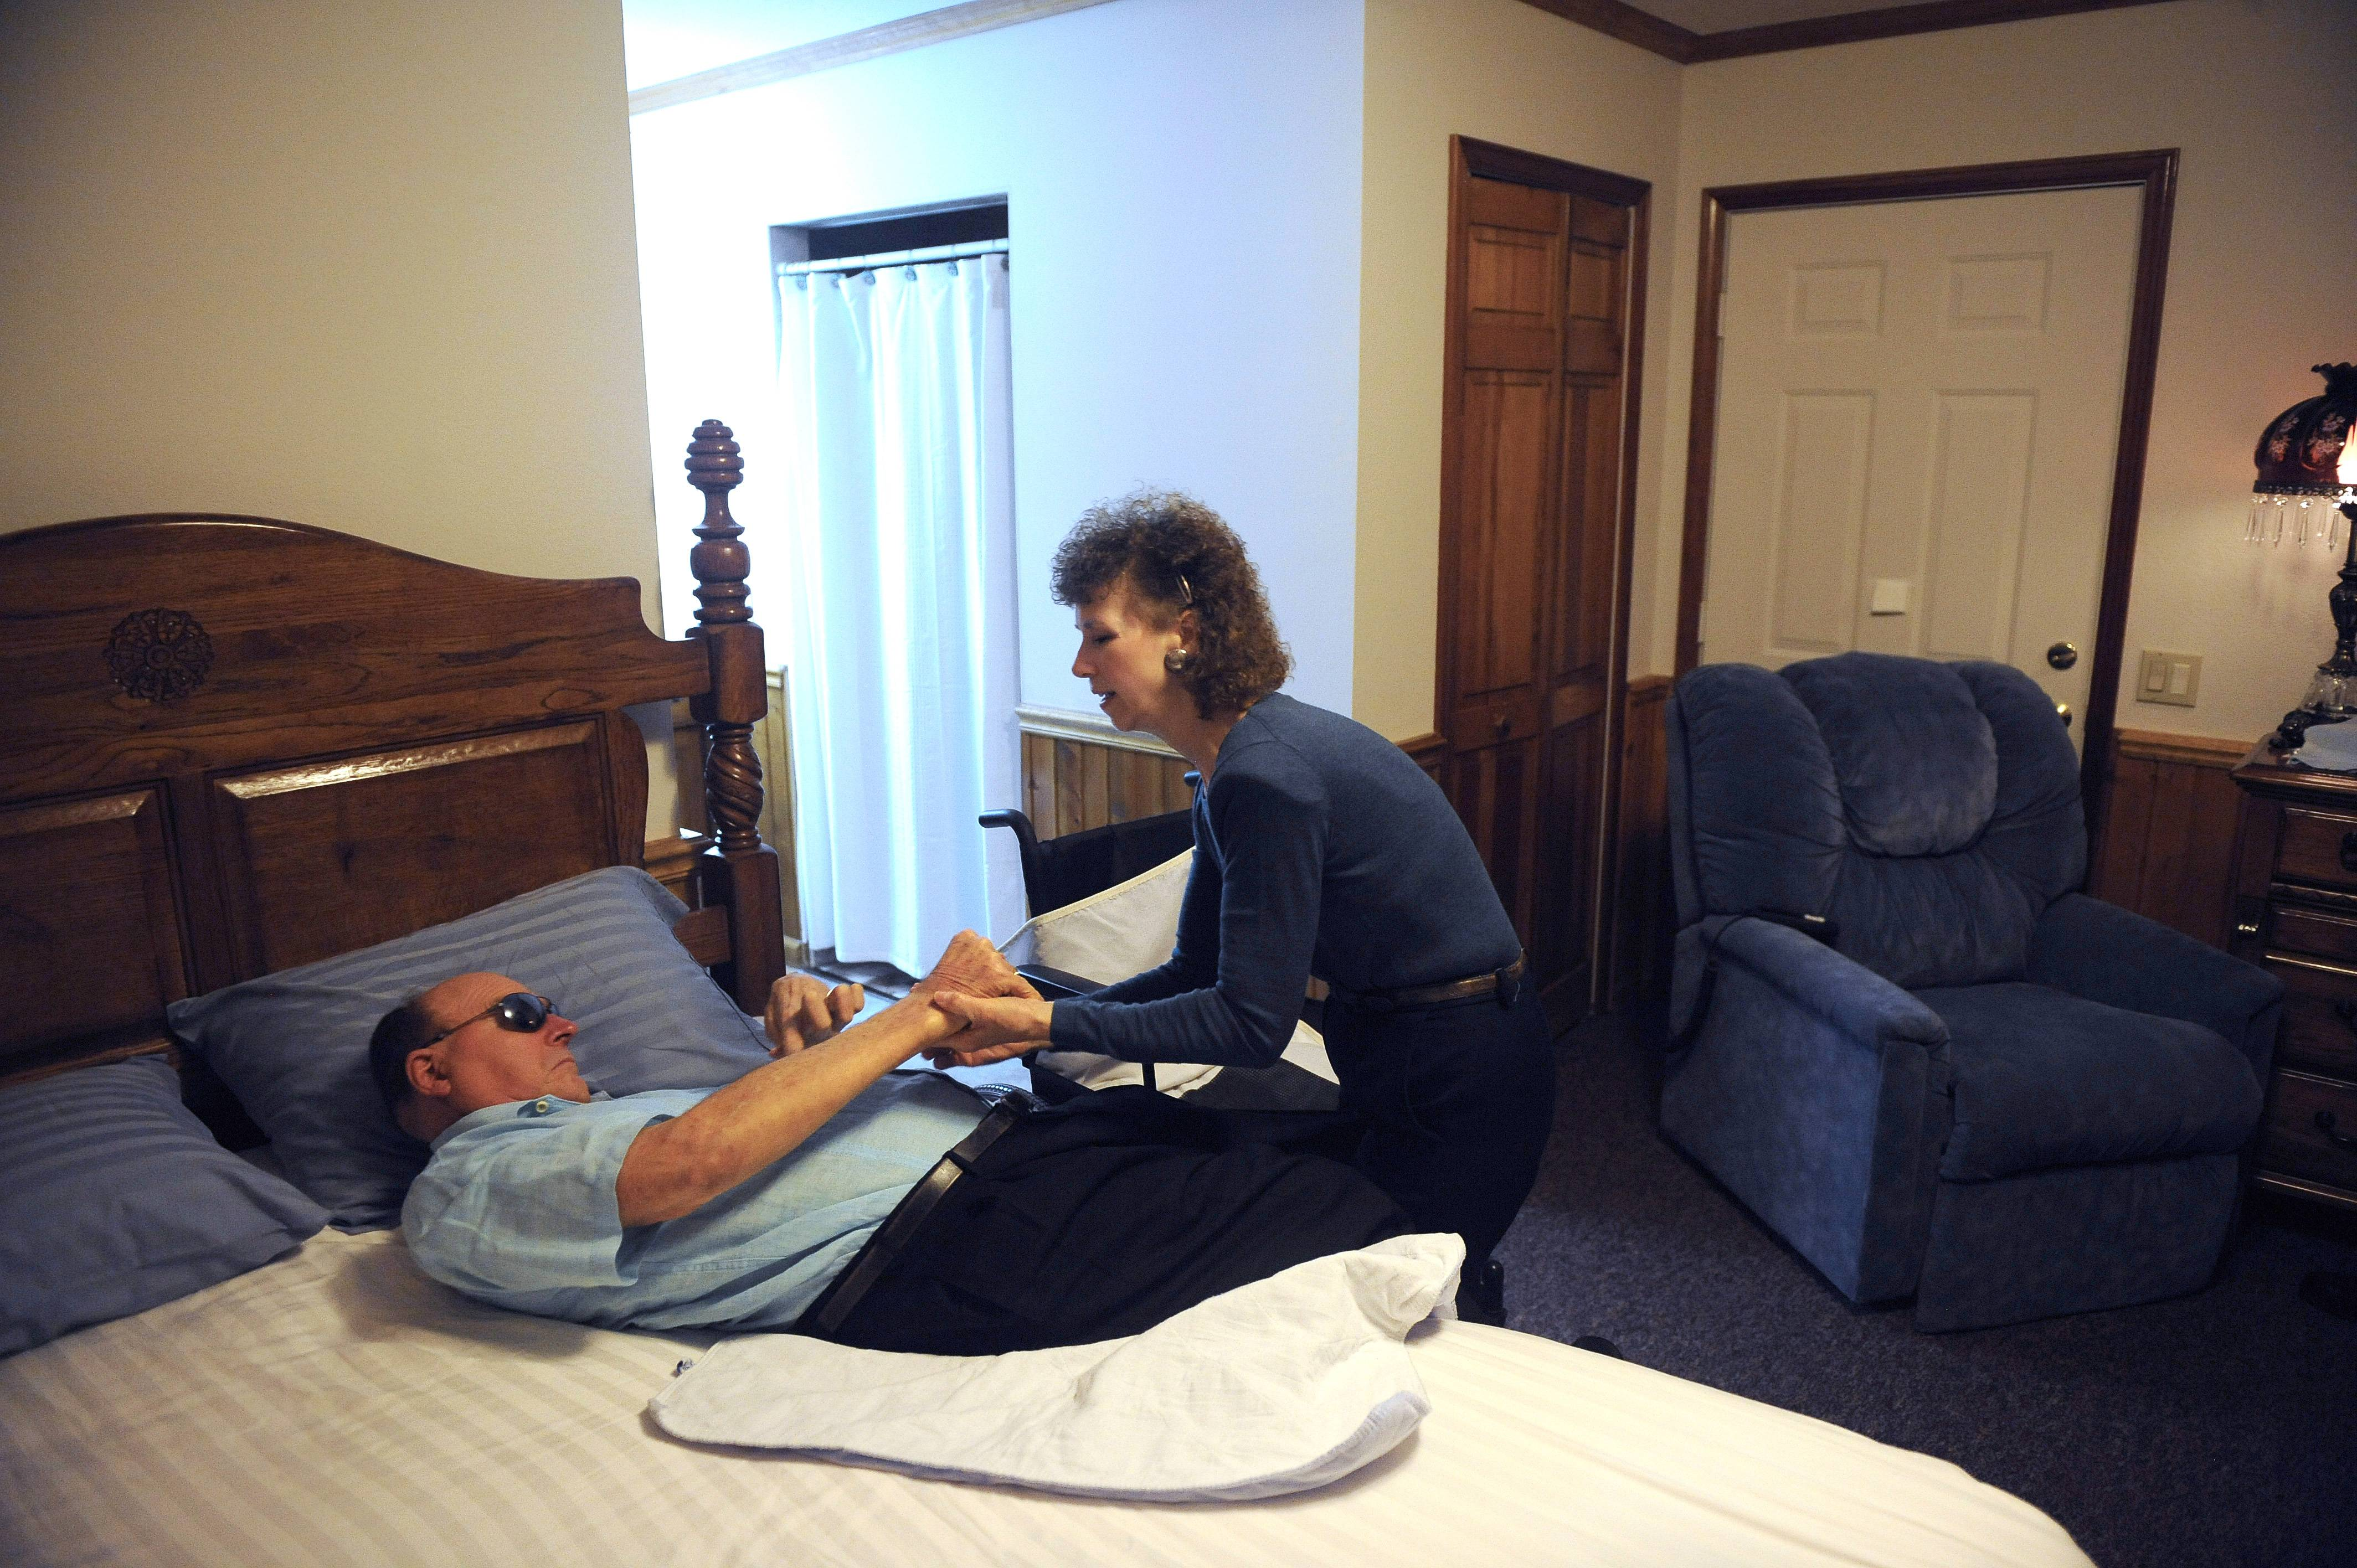 Pauline King cares for her husband Jerry King at their home in Anna, Ill. Jerry was diagnosed with Multiple Sclerosis in 1978. He can no longer go to the bathroom, bathe or dress himself without assistance from Pauline.